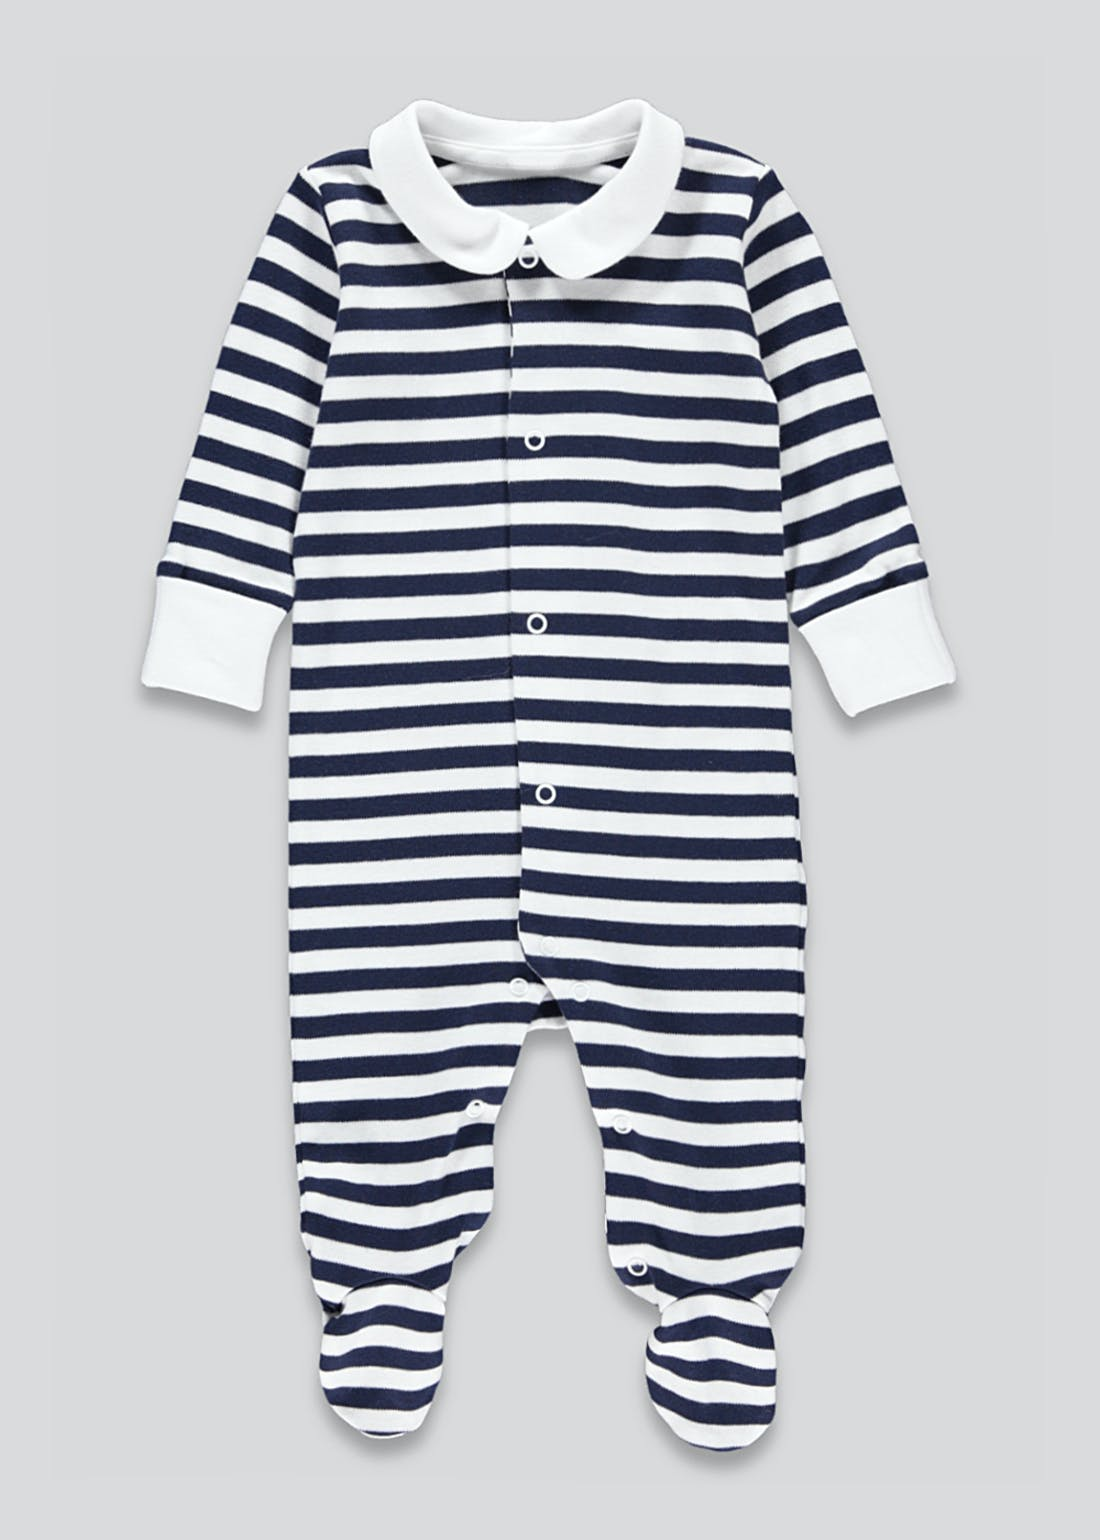 Unisex Stripe Collared Baby Grow (Tiny Baby-12mths)